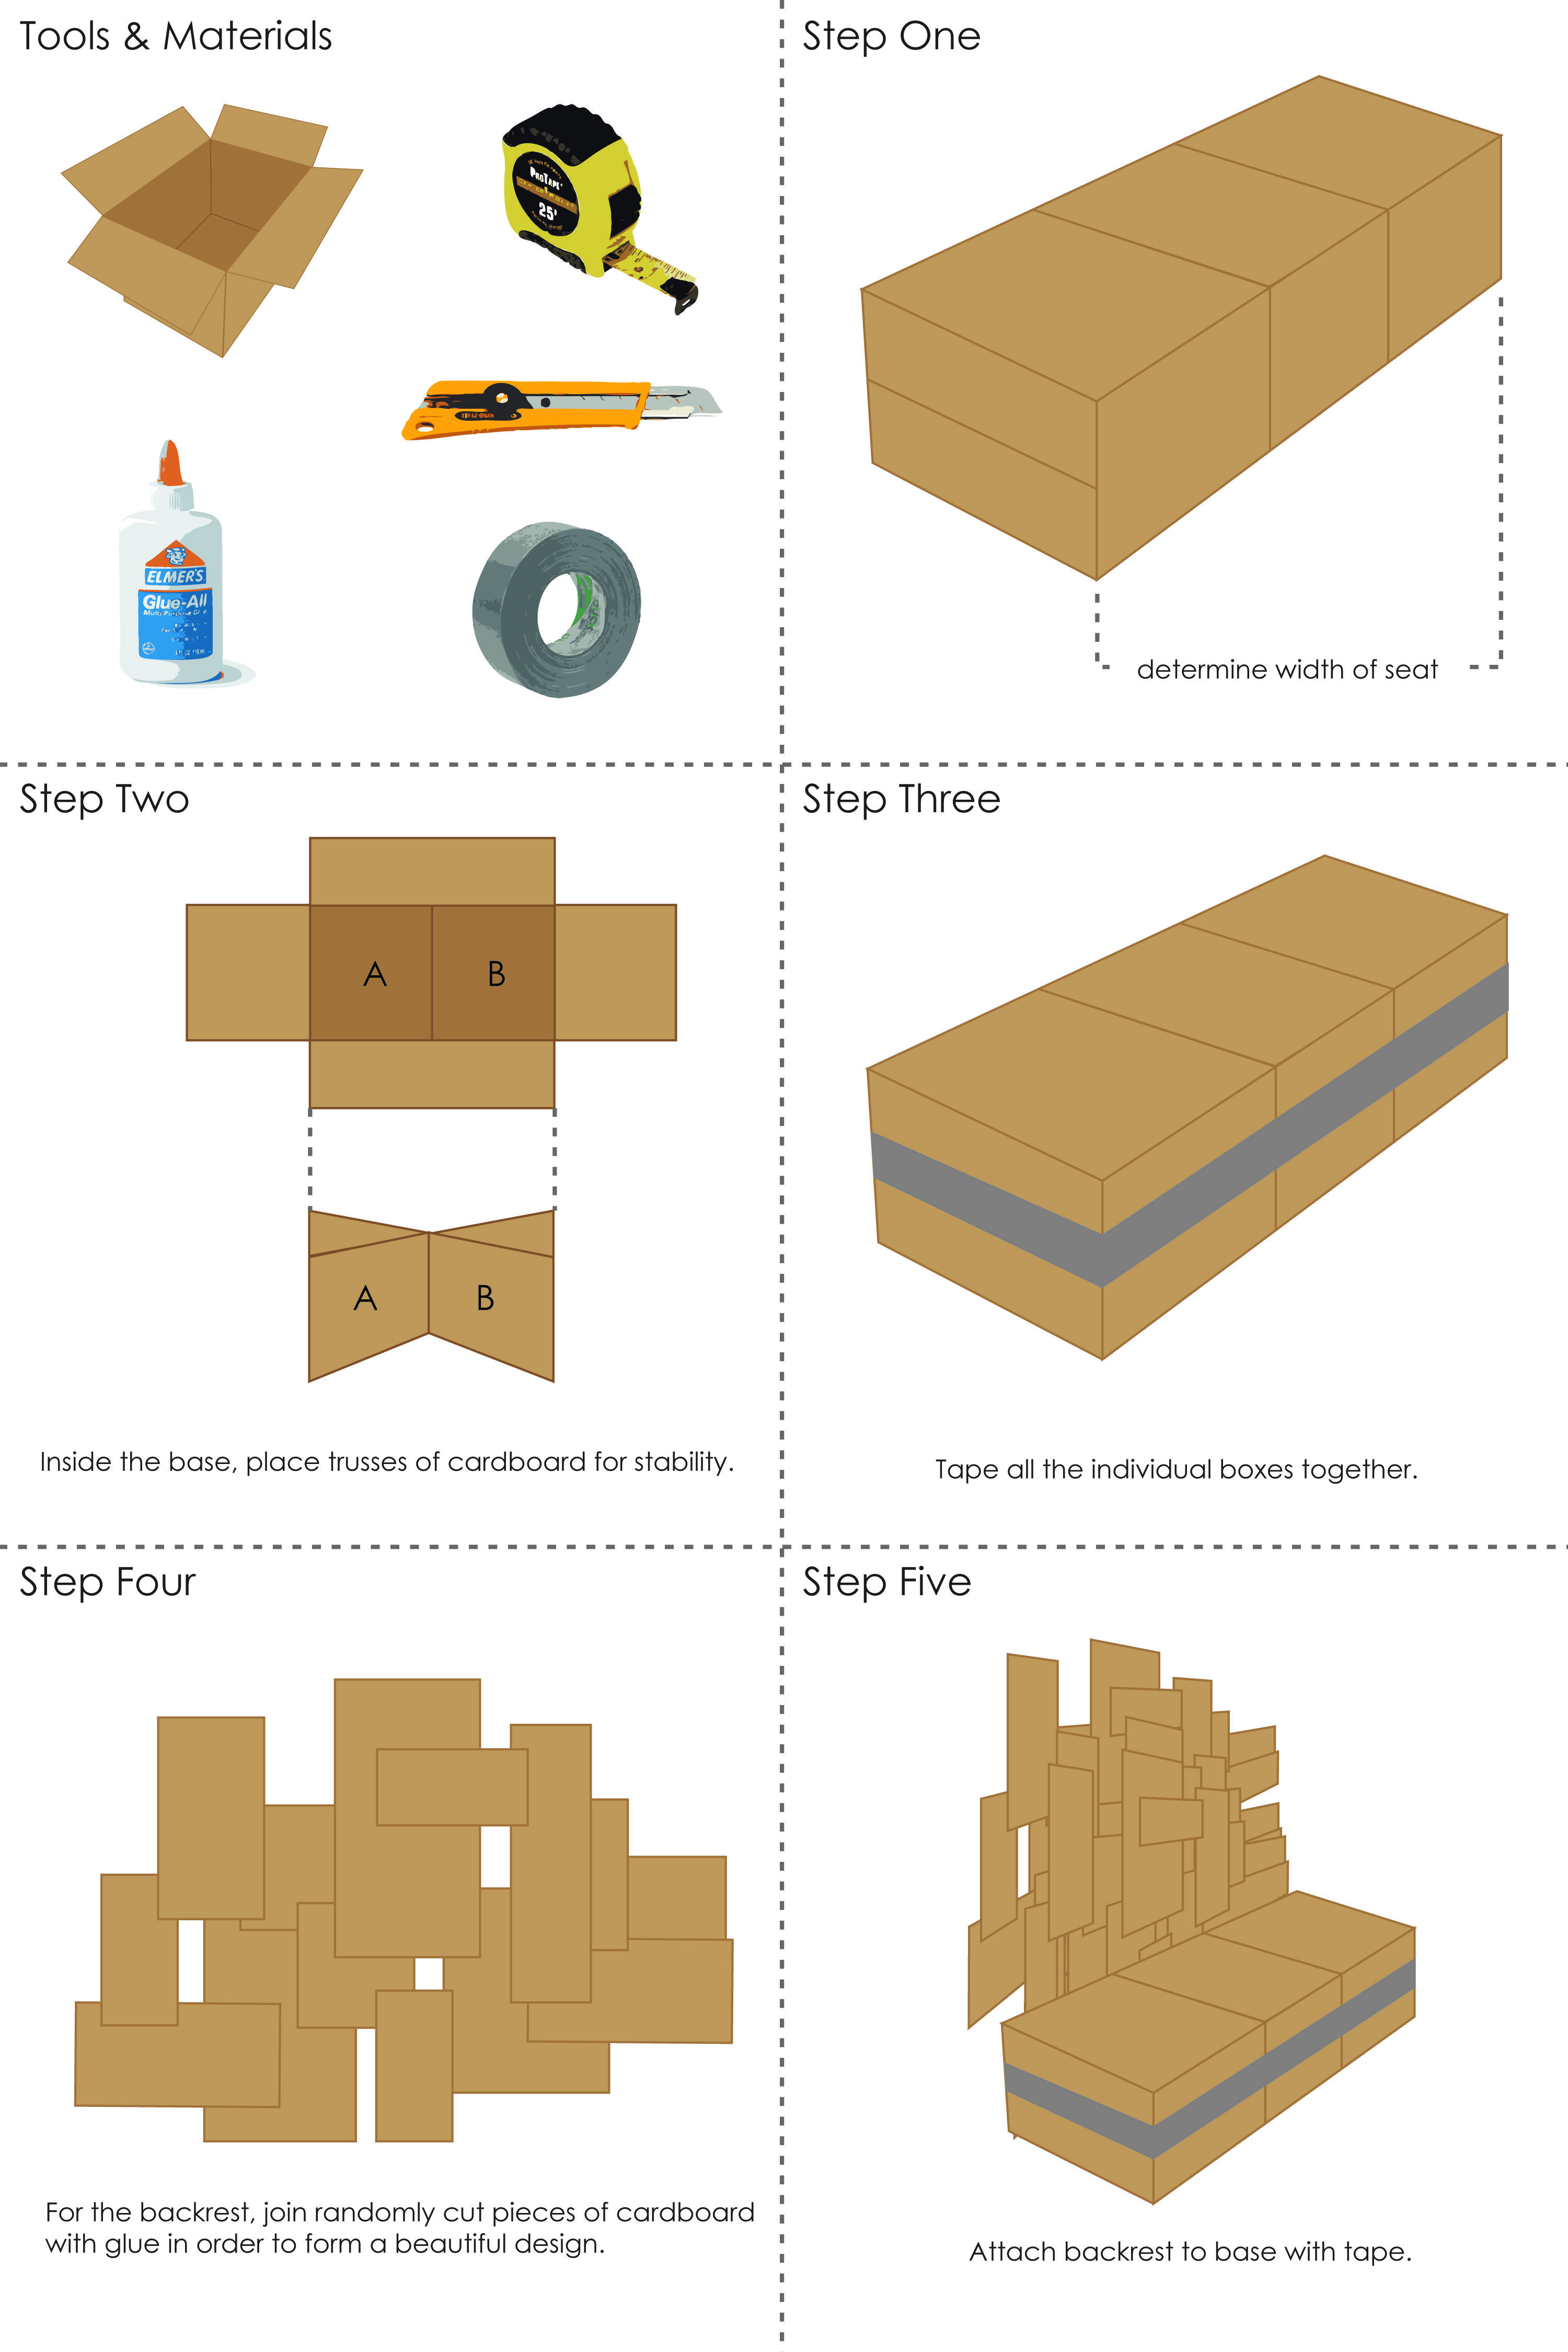 Cardboard Chair Instructions Creativity Design Cognition